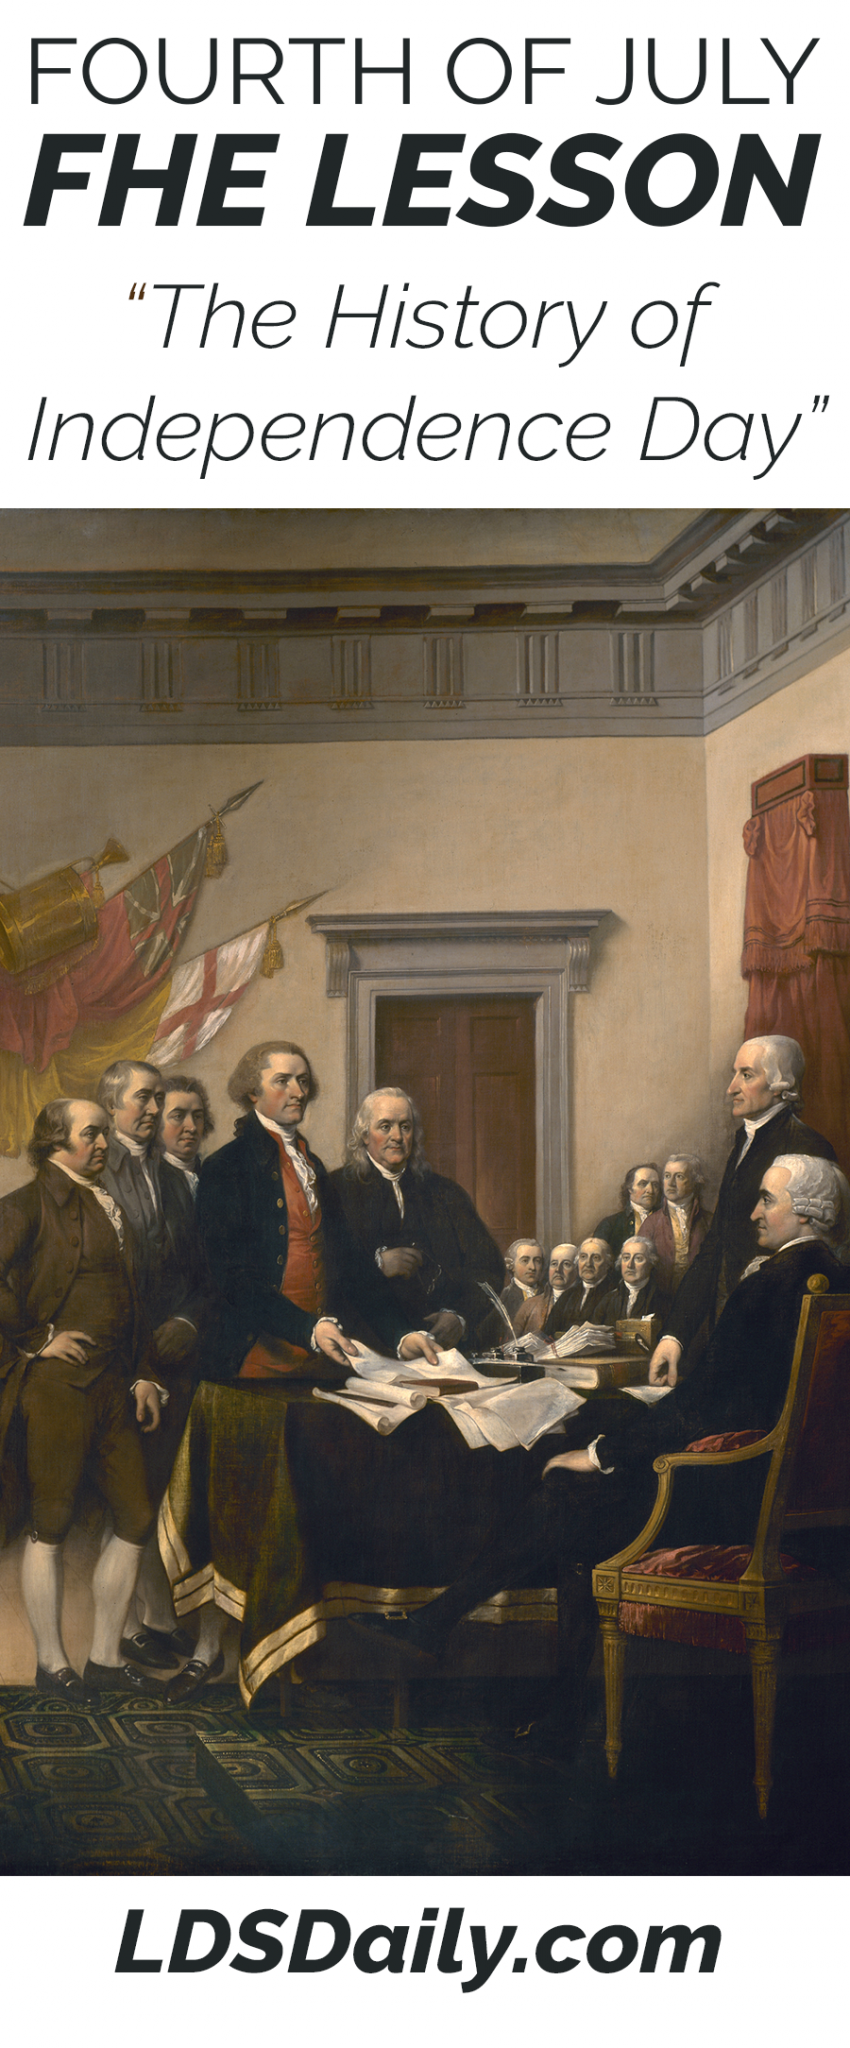 fourth-of-july-fhe-lesson-the-history-of-independence-day